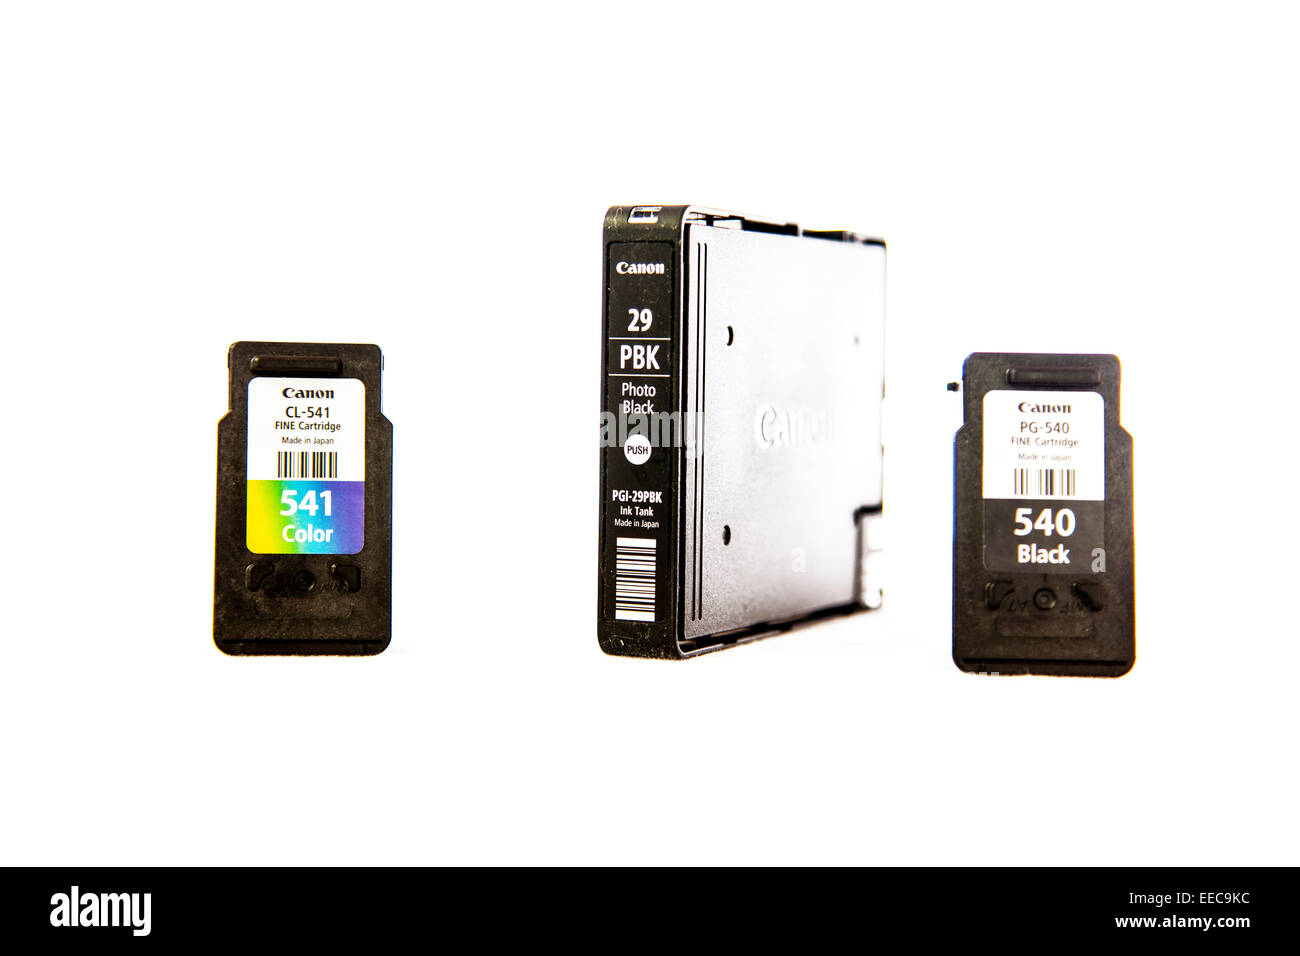 Canon Printer Ink Cartridges Print Printing Black Container Cartridge Inks Cut Out Copy Space White Background